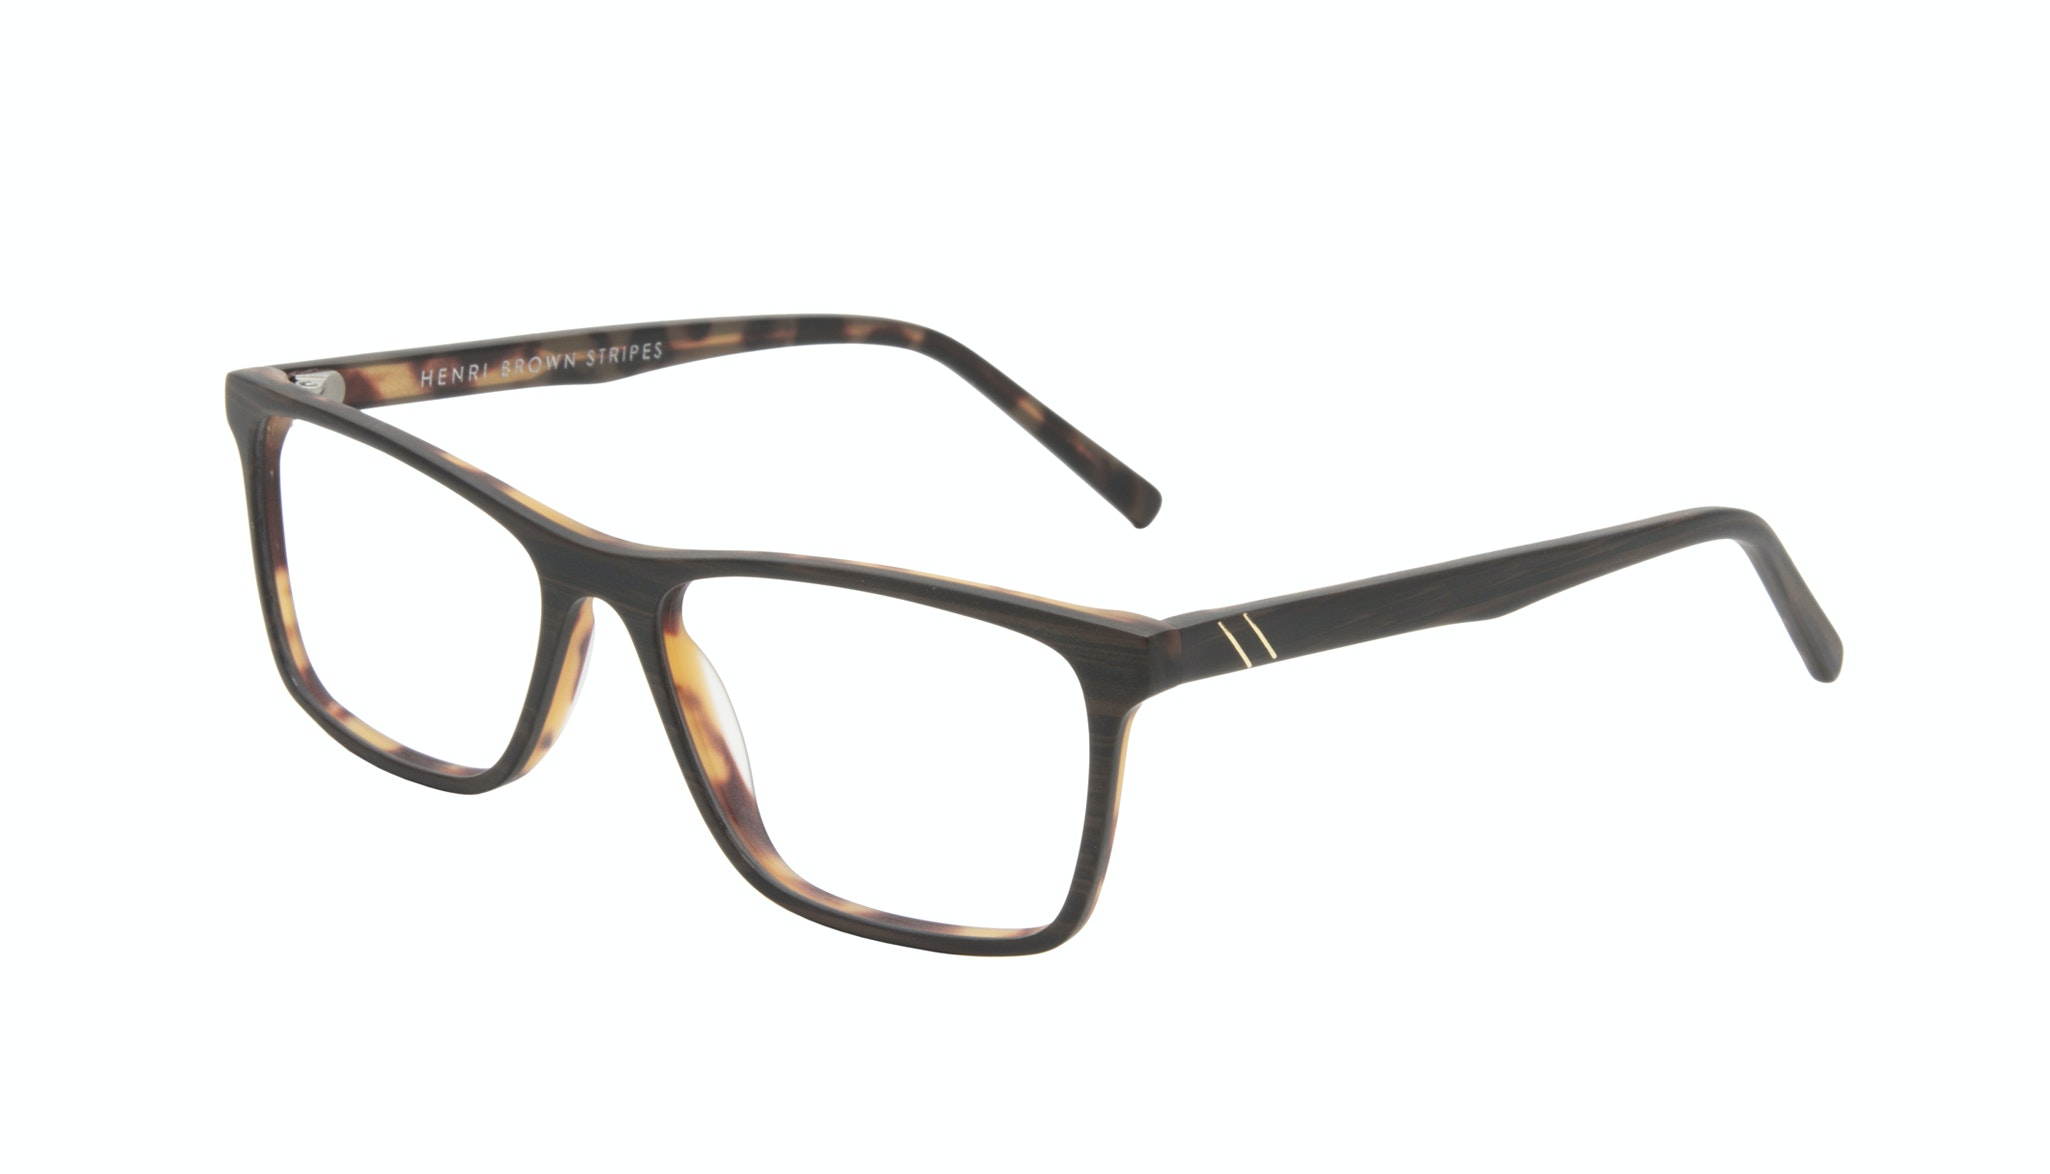 Affordable Fashion Glasses Rectangle Eyeglasses Men Henri Brown Stripes Tilt